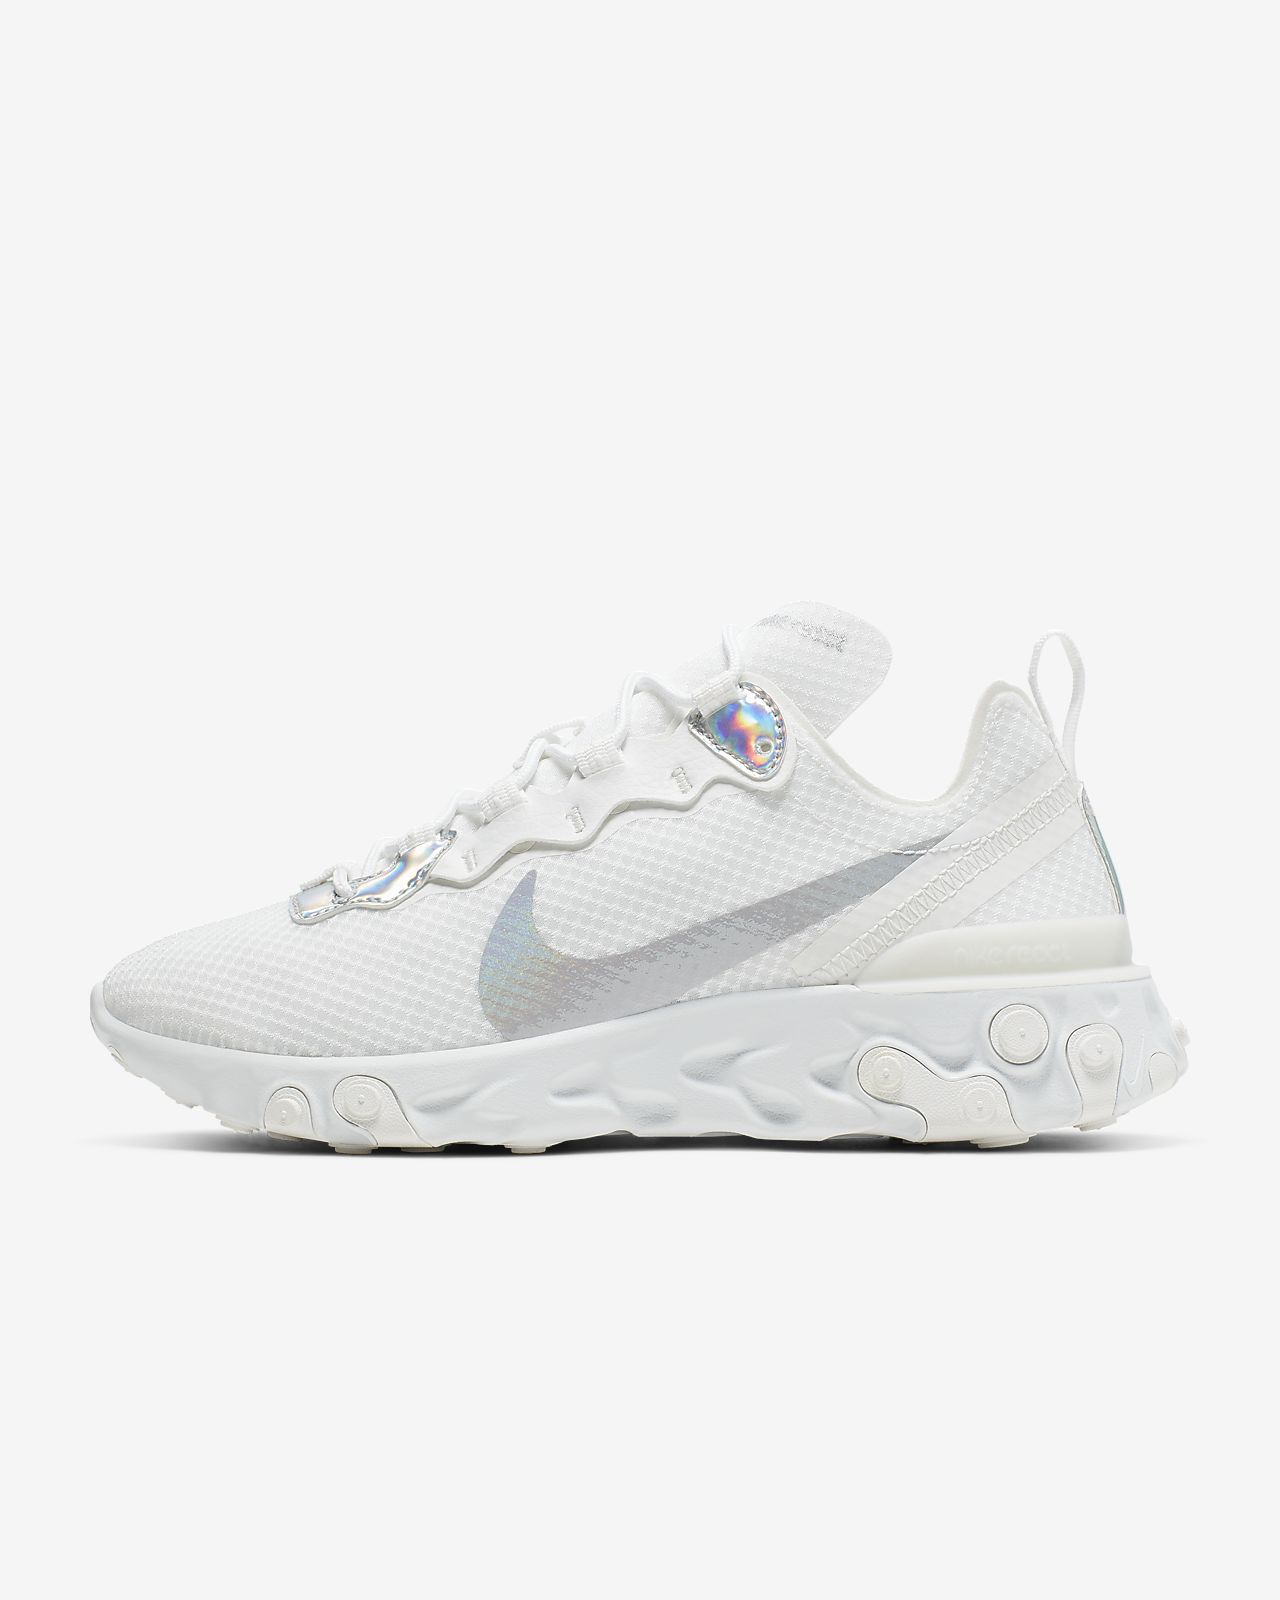 Nike React Element 55 Women's Iridescent Shoe